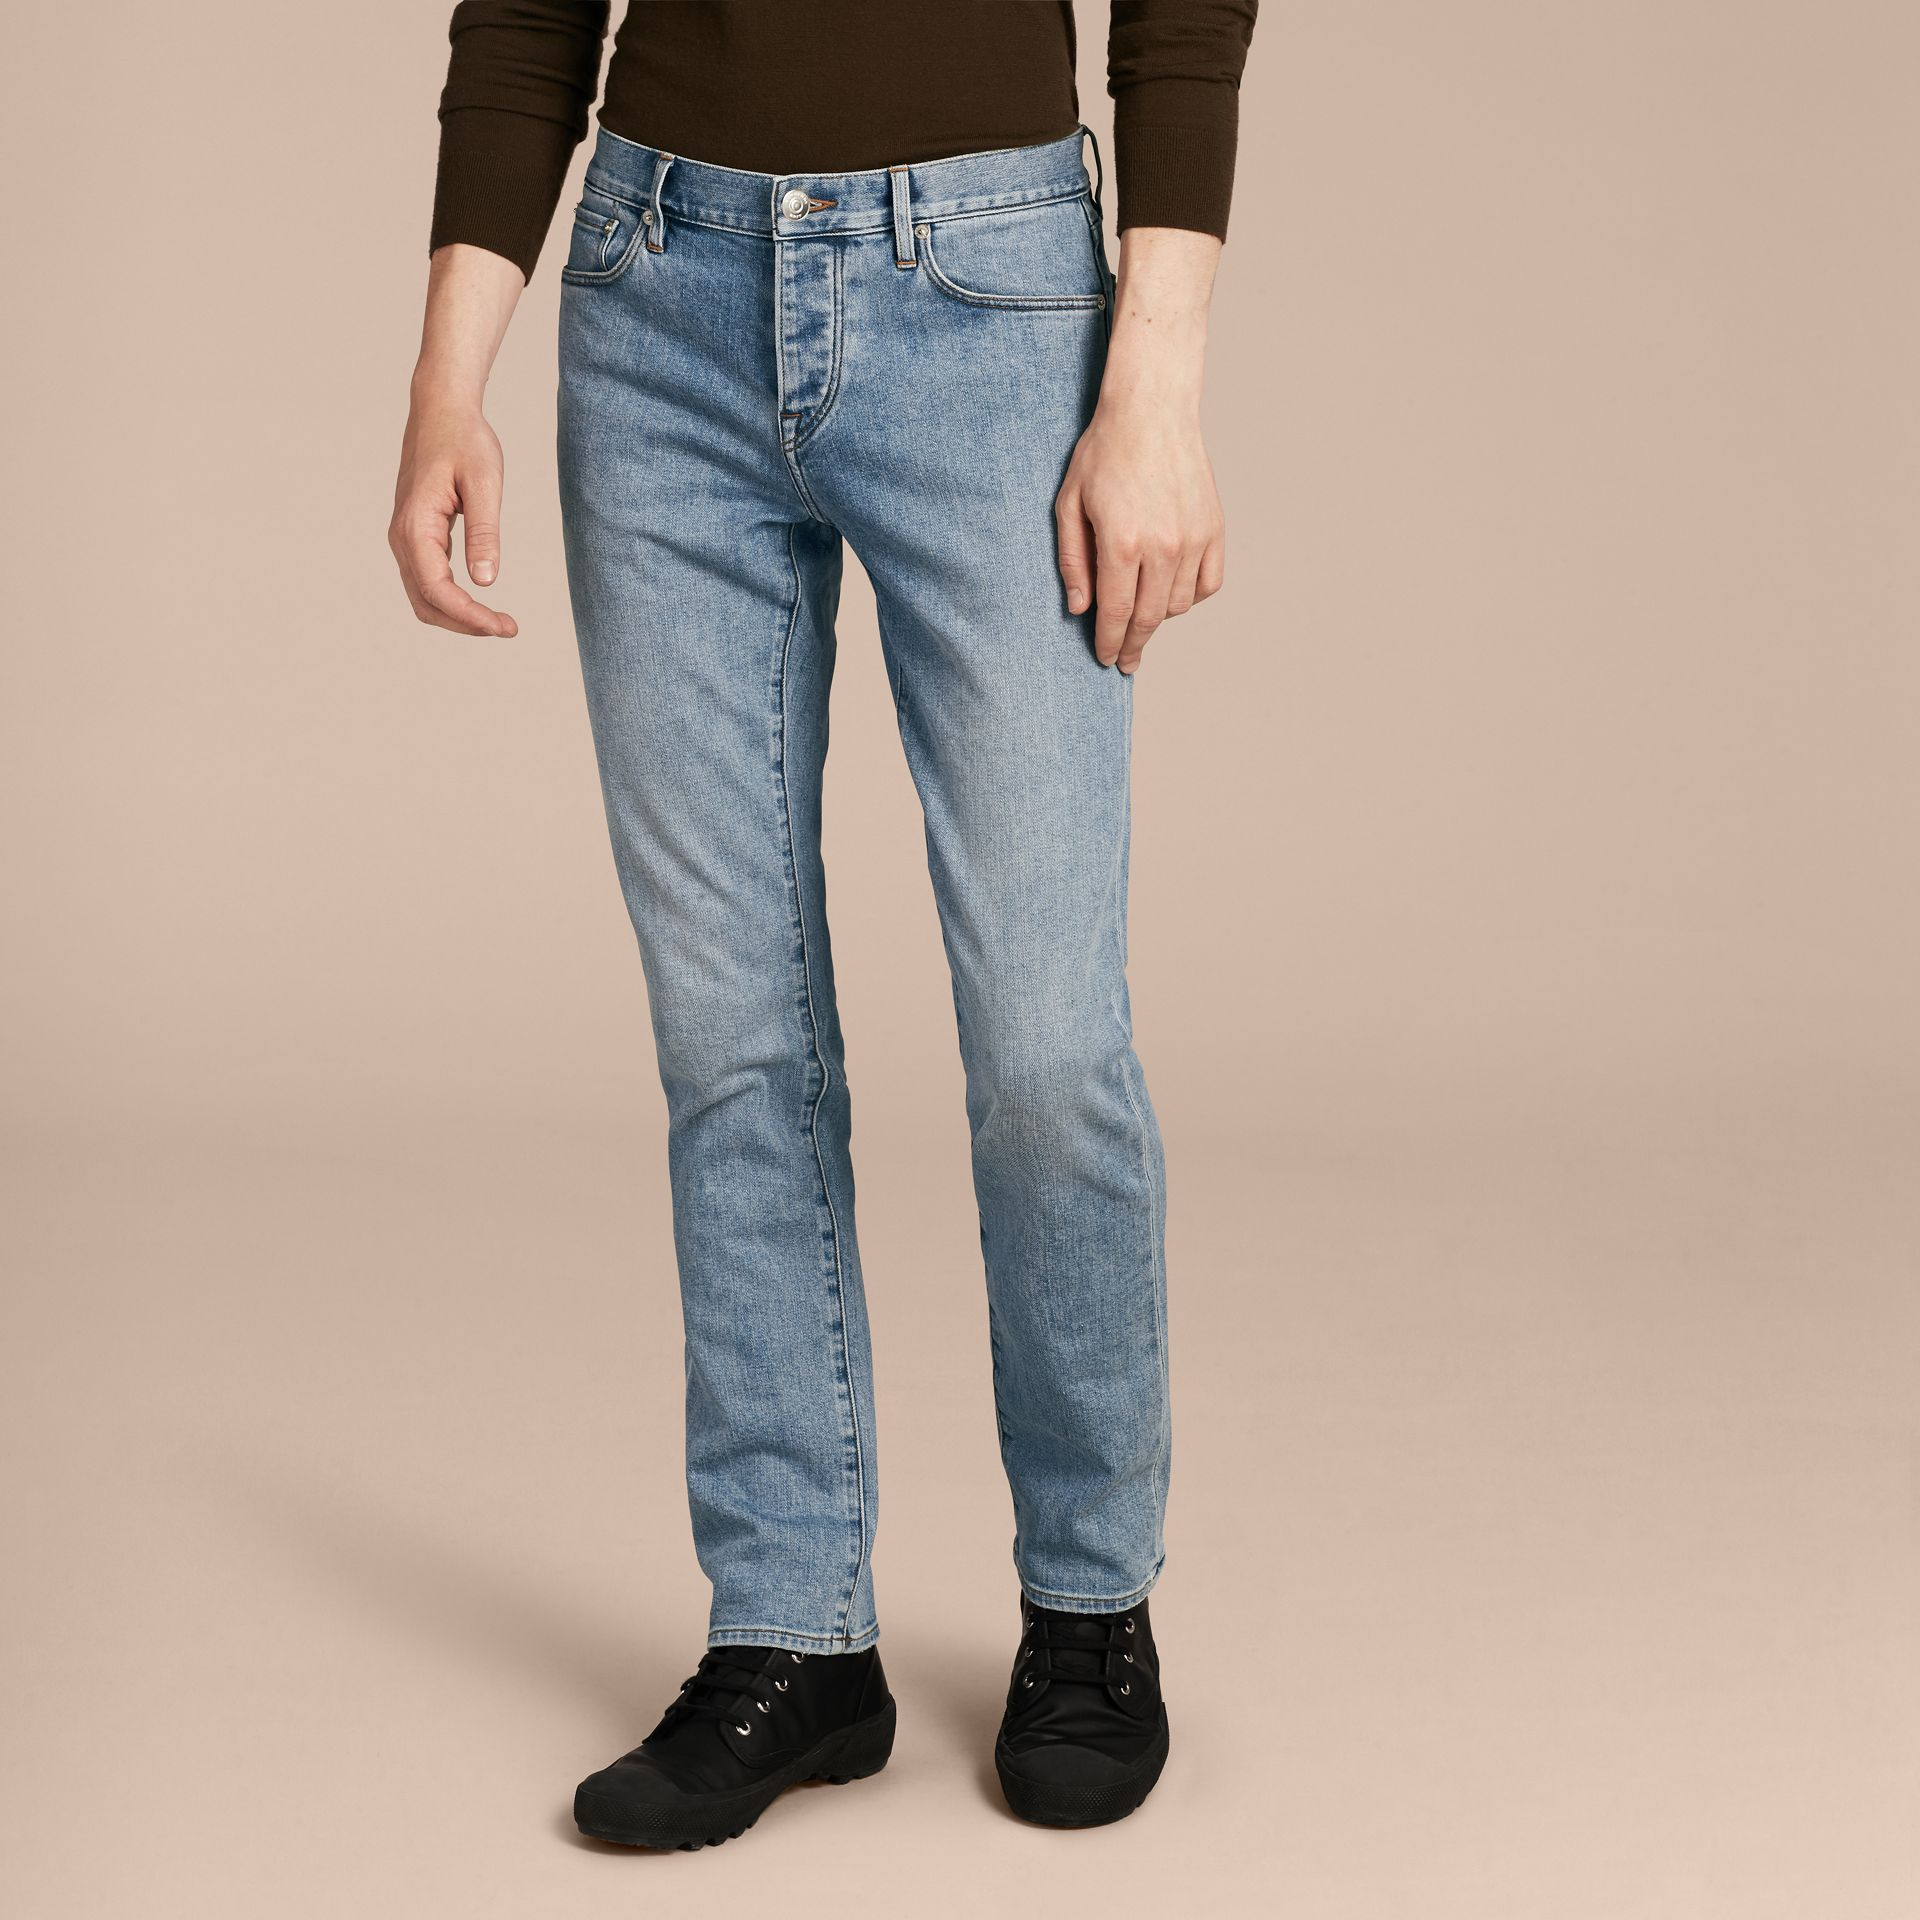 Straight Fit Comfort Stretch Japanese Denim Jeans in Light Indigo - Men | Burberry - gallery image 7